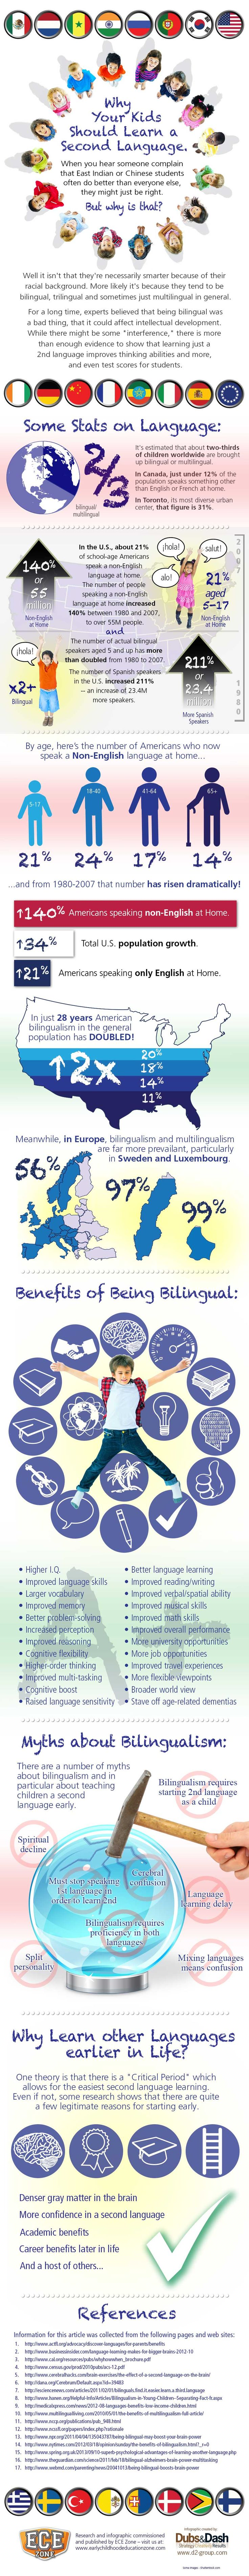 Some wonderful info and stats about teaching your young child a second language